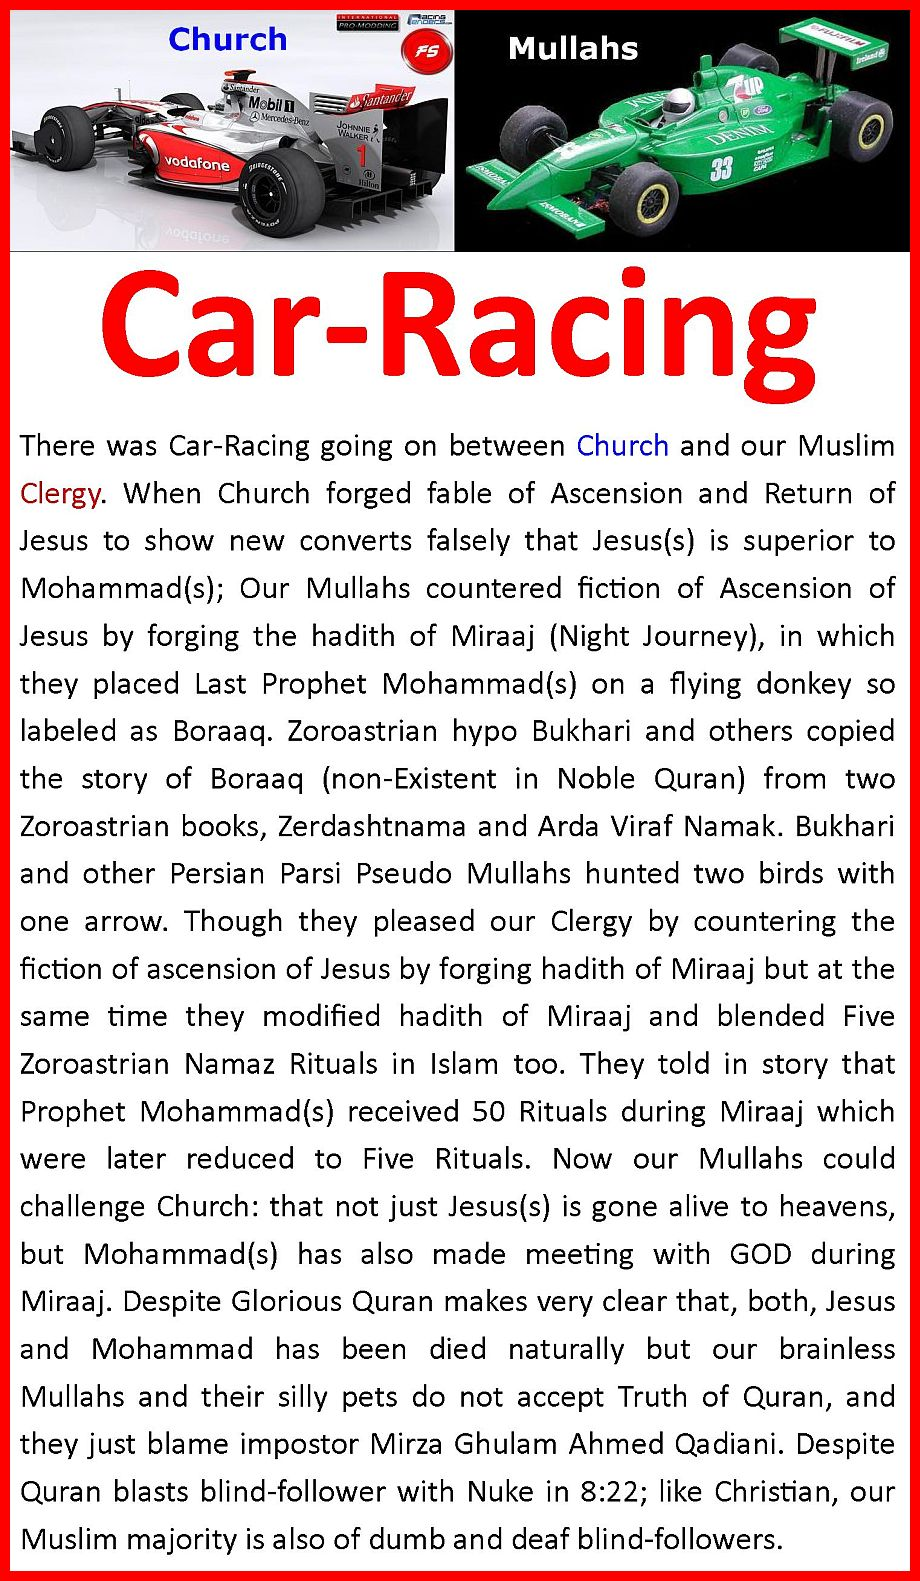 CarRacingChurchVsMullahsF